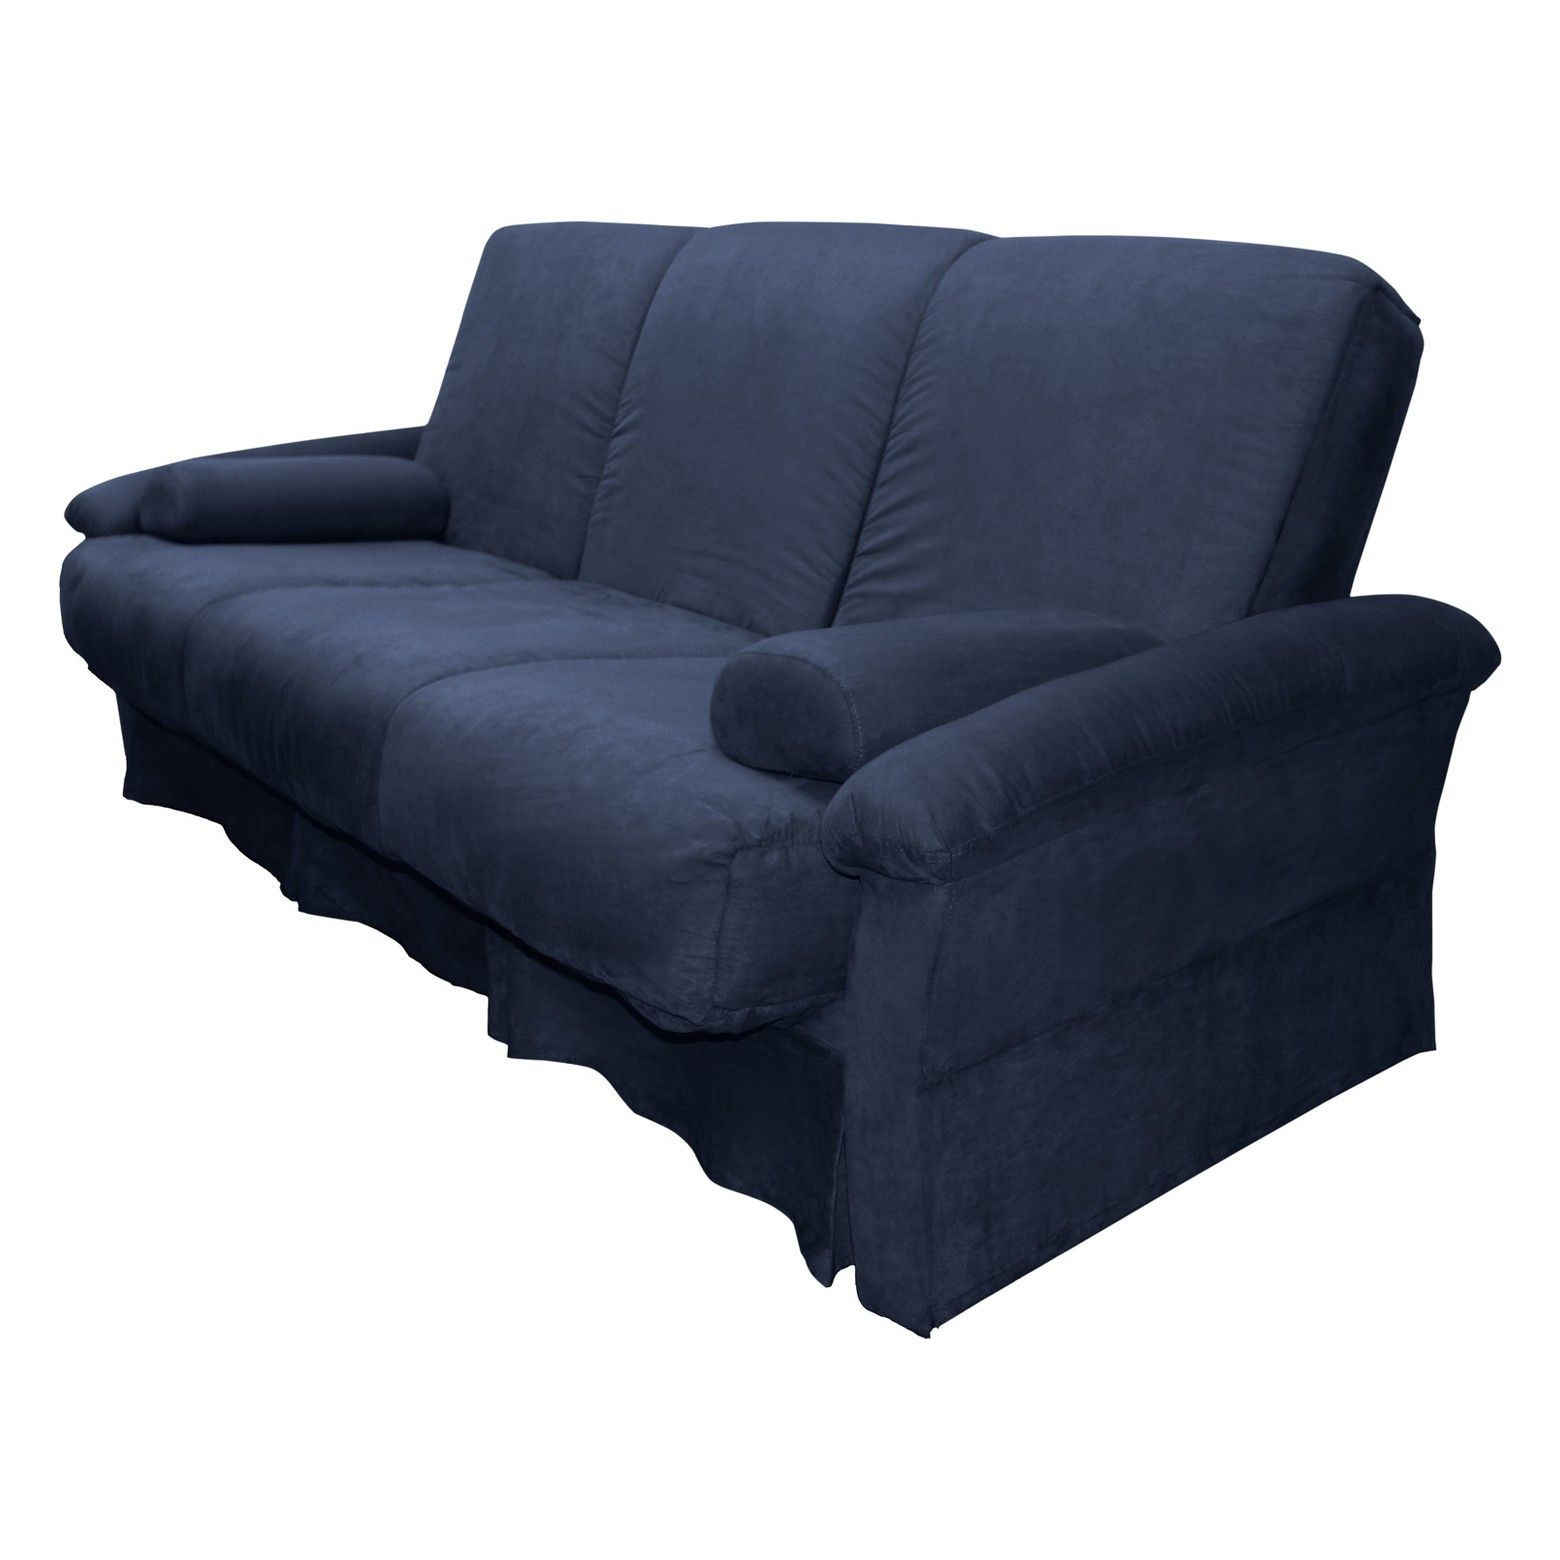 Sit Nirvanna Perfect Futon Sofa Sleeper N Sleep